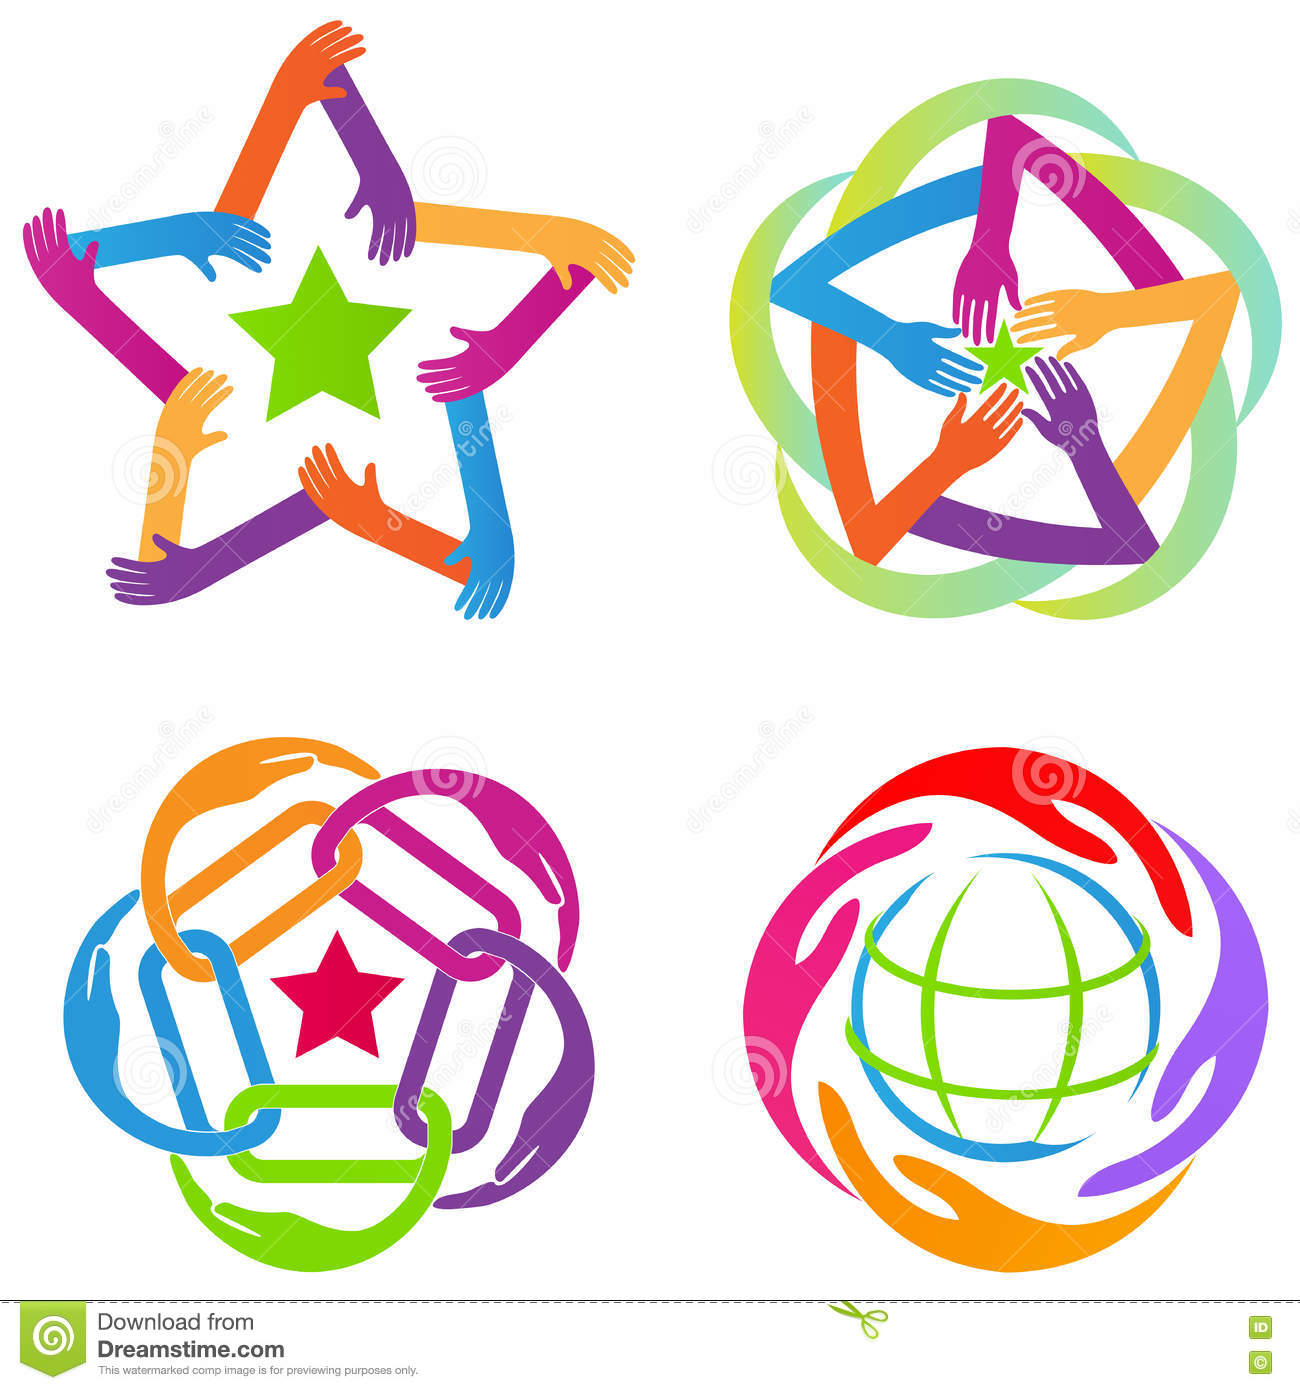 Unity Symbol Stock Illustrations 92 875 Unity Symbol Stock Illustrations Vectors Clipart Dreamstime